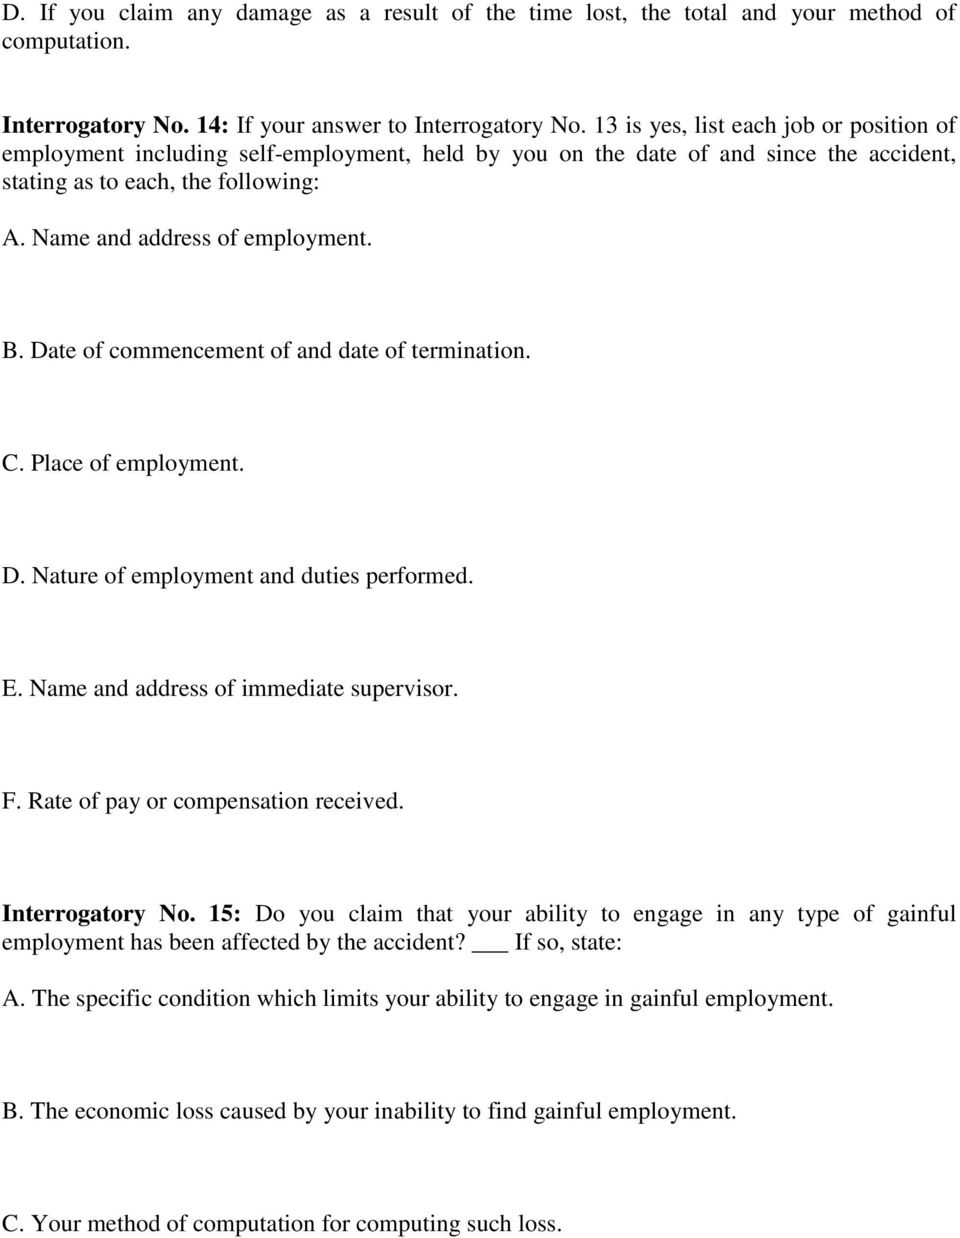 B. Date of commencement of and date of termination. C. Place of employment. D. Nature of employment and duties performed. E. Name and address of immediate supervisor. F.